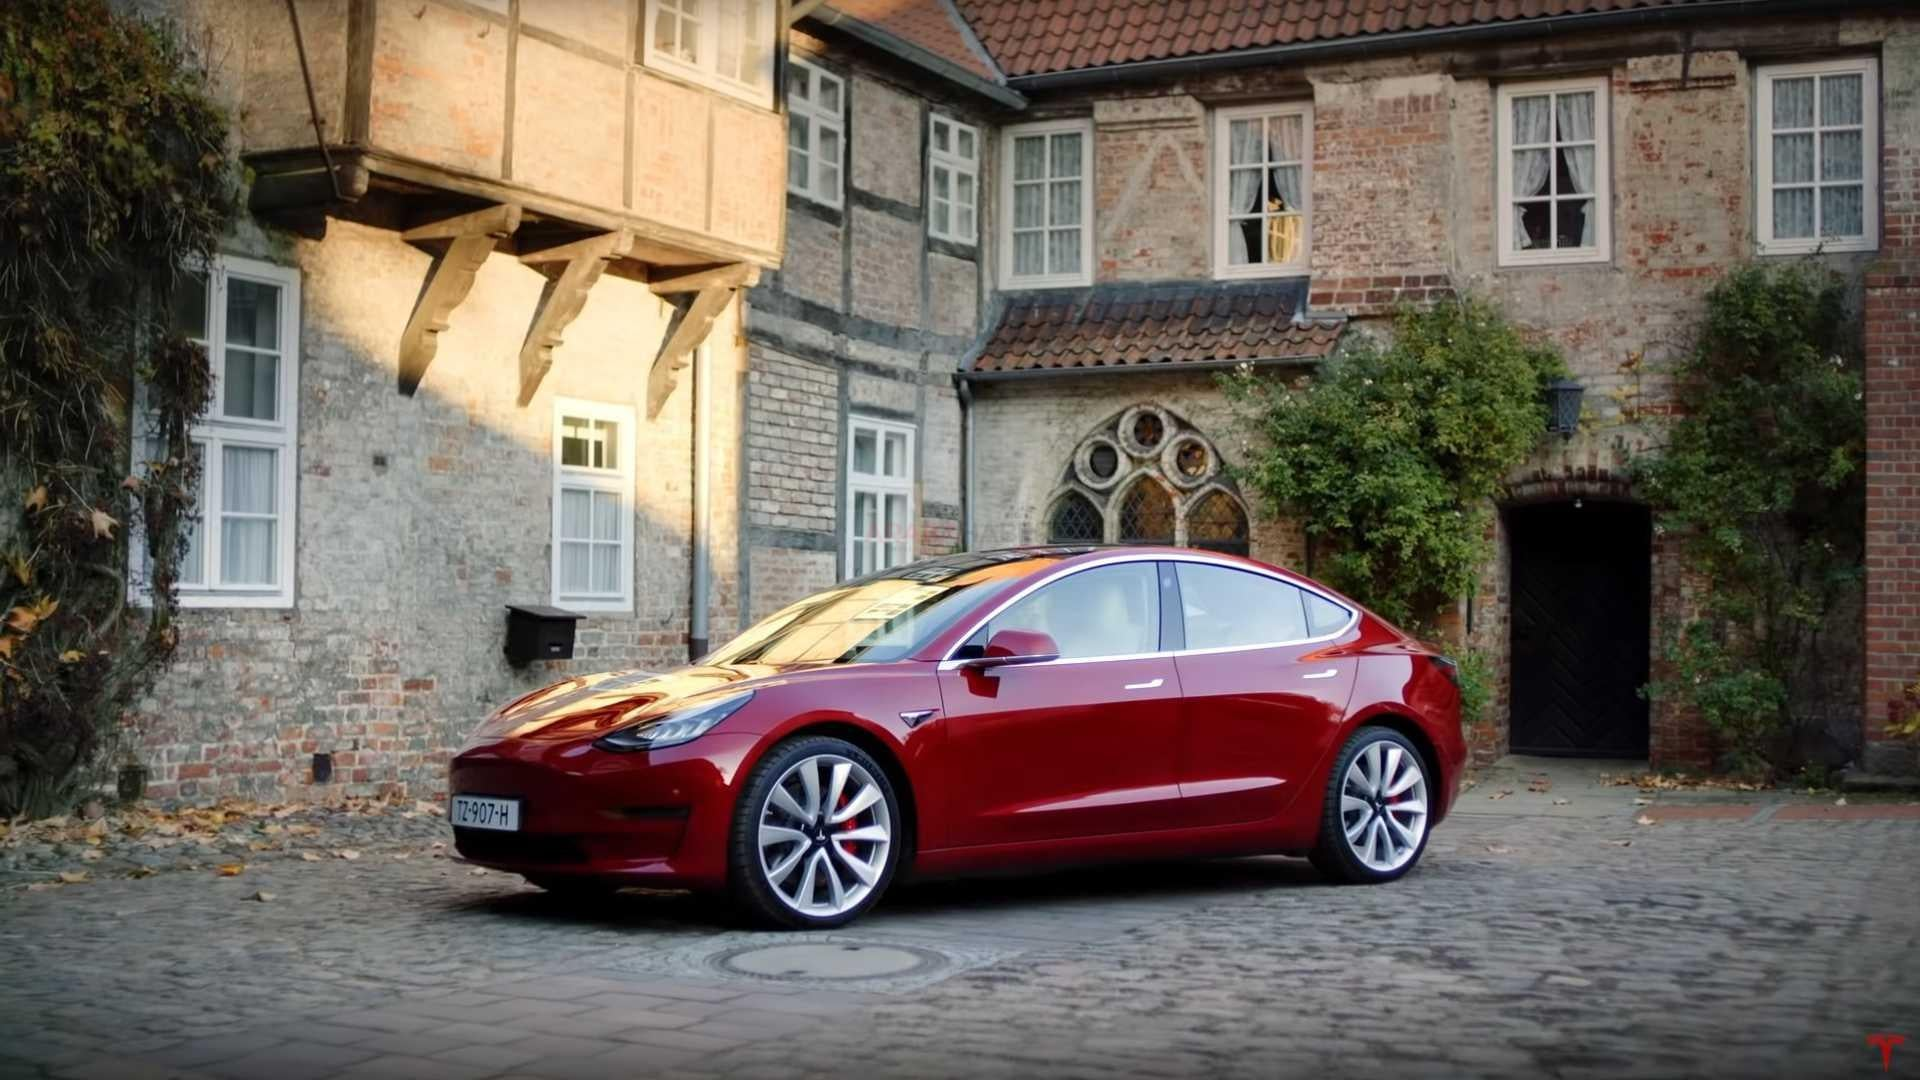 Tesla Model 3 Becomes Iceland's Best-Selling Vehicle (ALL) 1st Half 2020